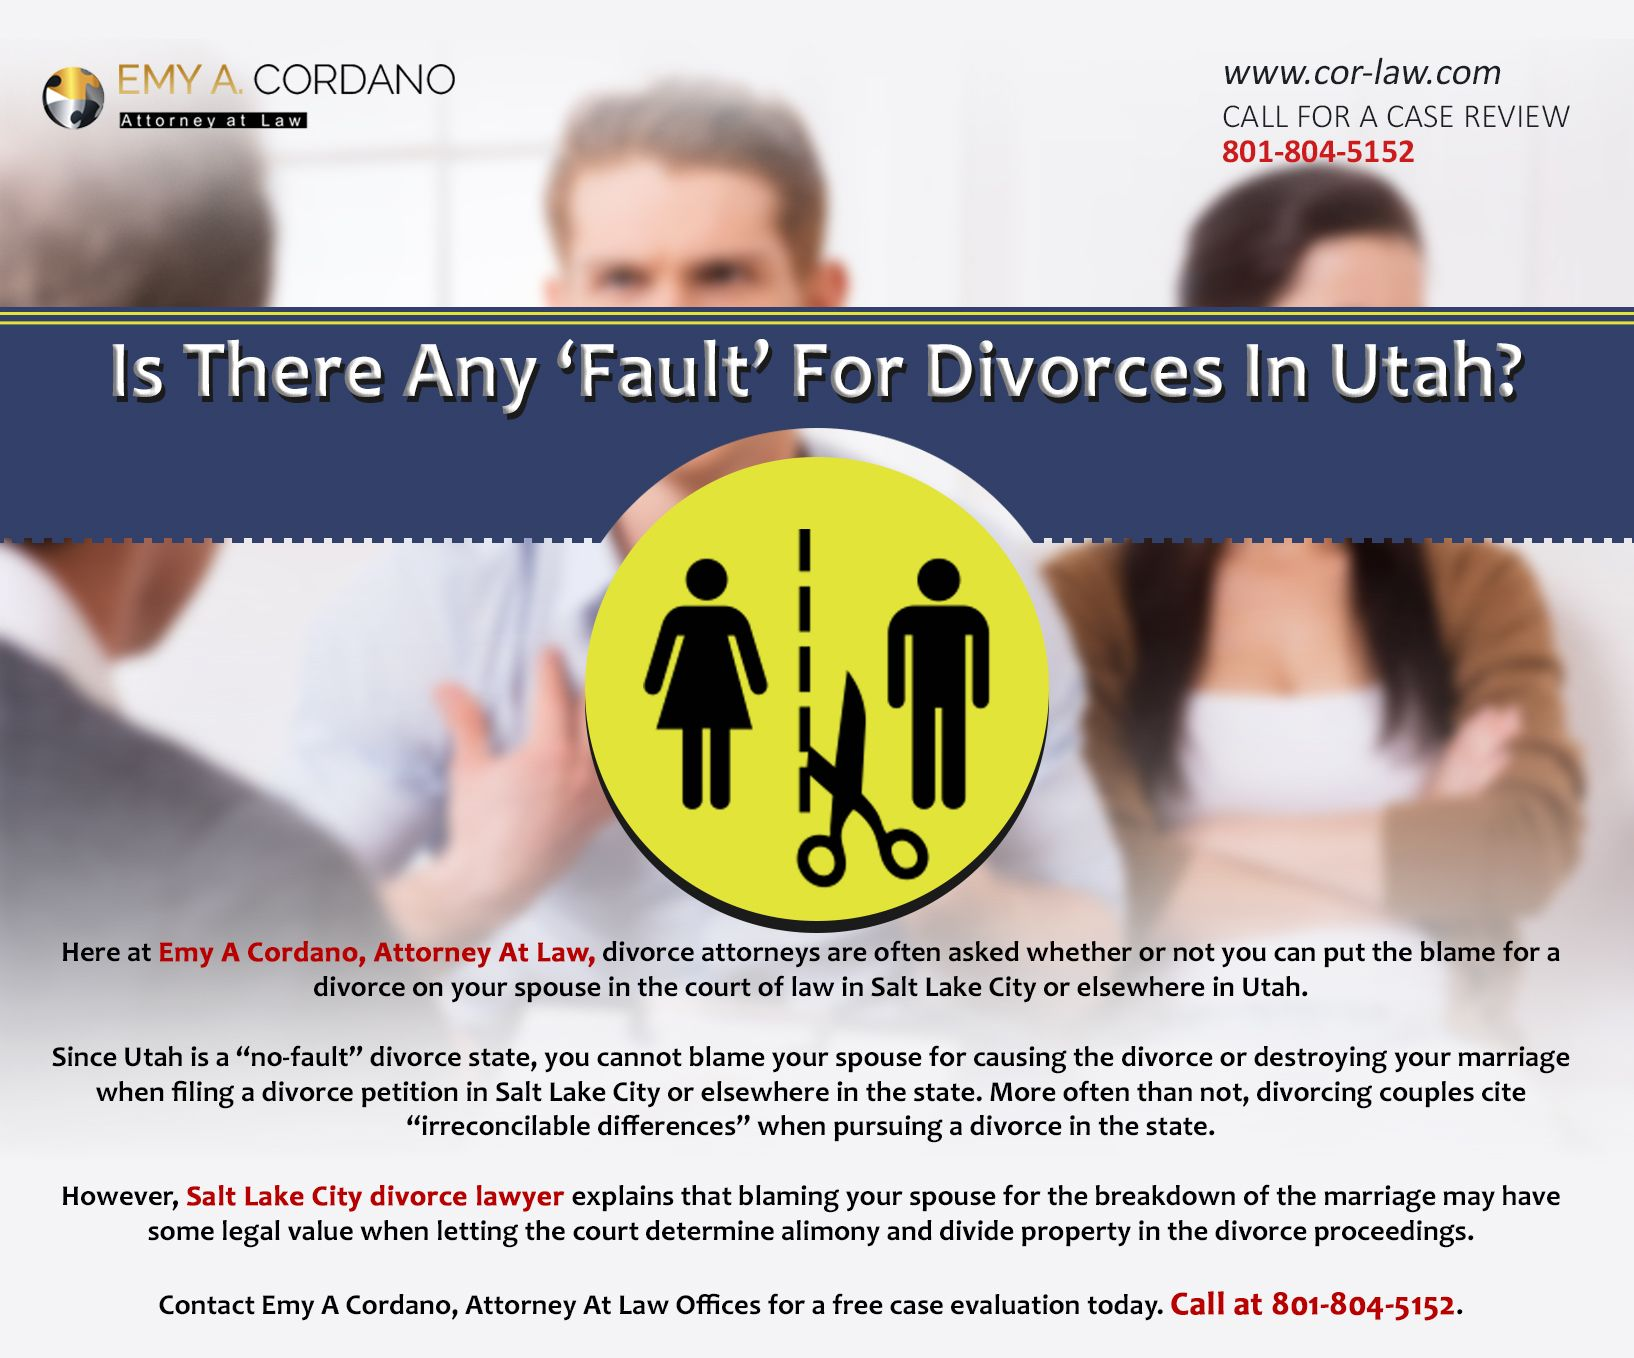 If You Are Concerned How Your Property Will Be Divided During The Divorce Proceedings Seek A Free Consultation With A Divorce Divorce Attorney Divorce Lawyers